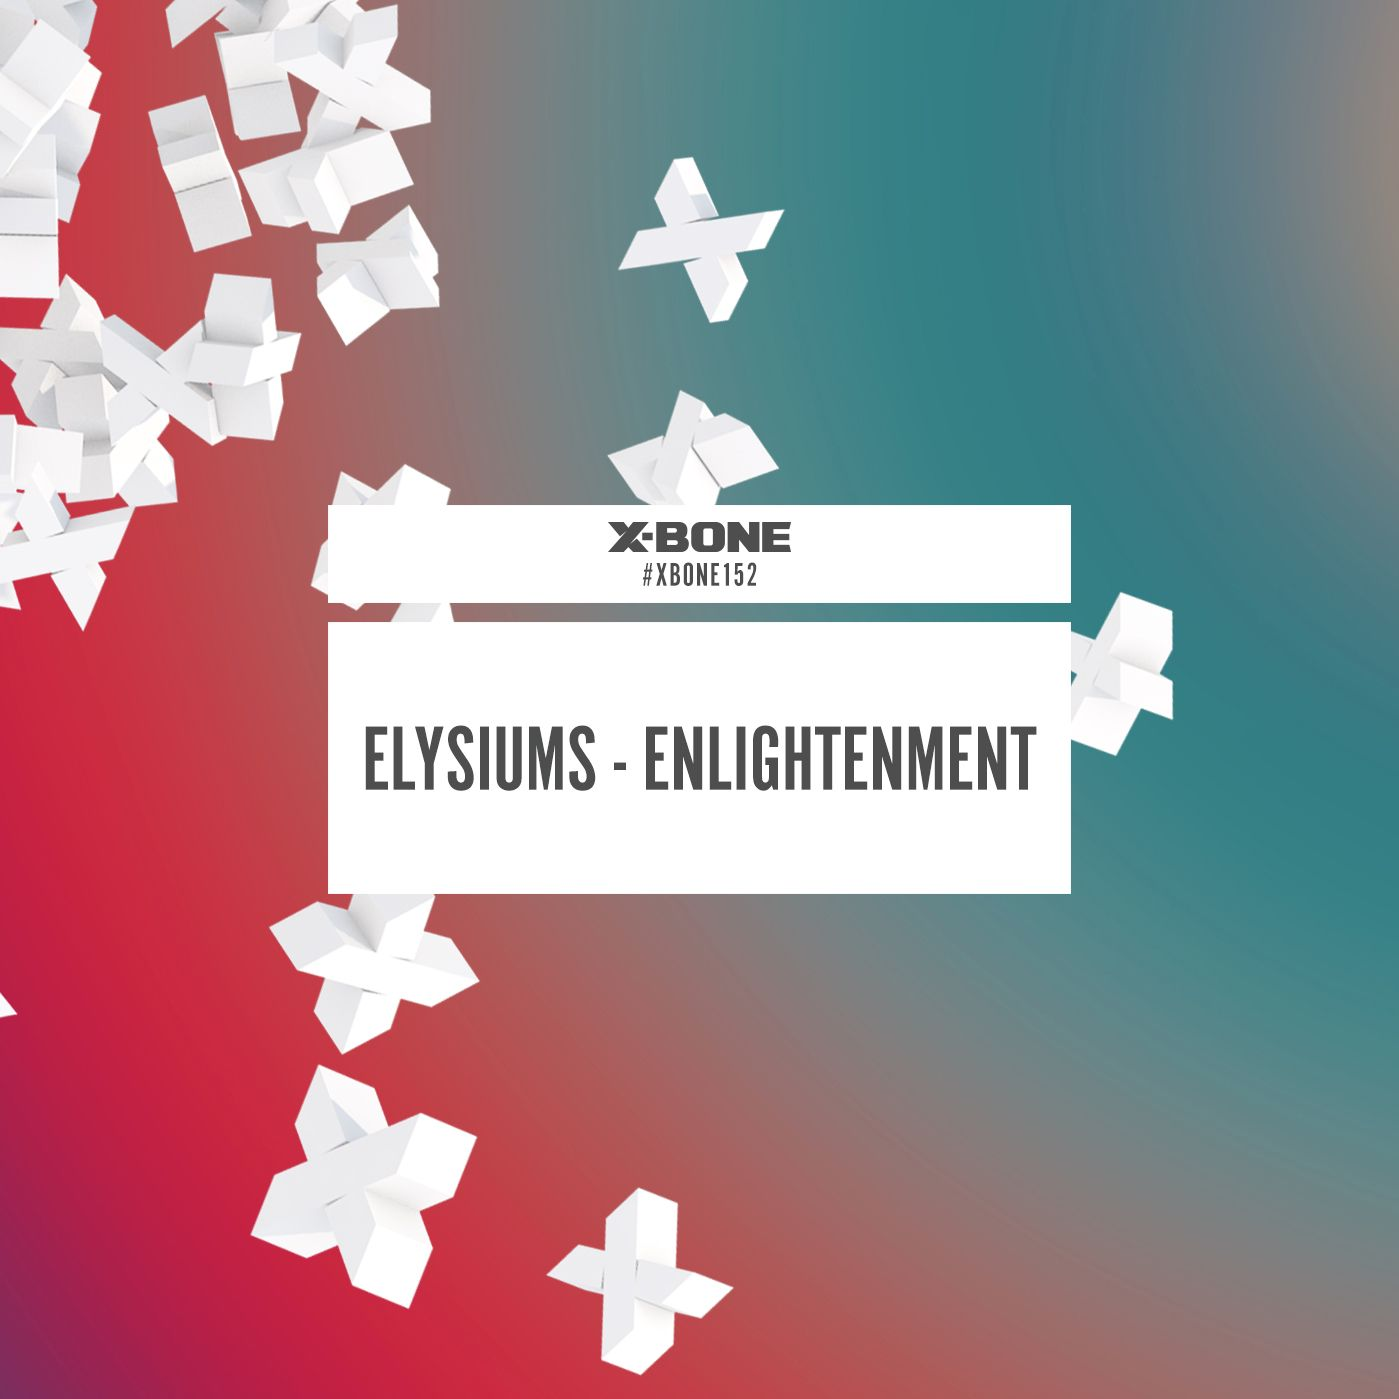 Elysiums - Enlightenment [X-BONE RECORDS] XBONE152